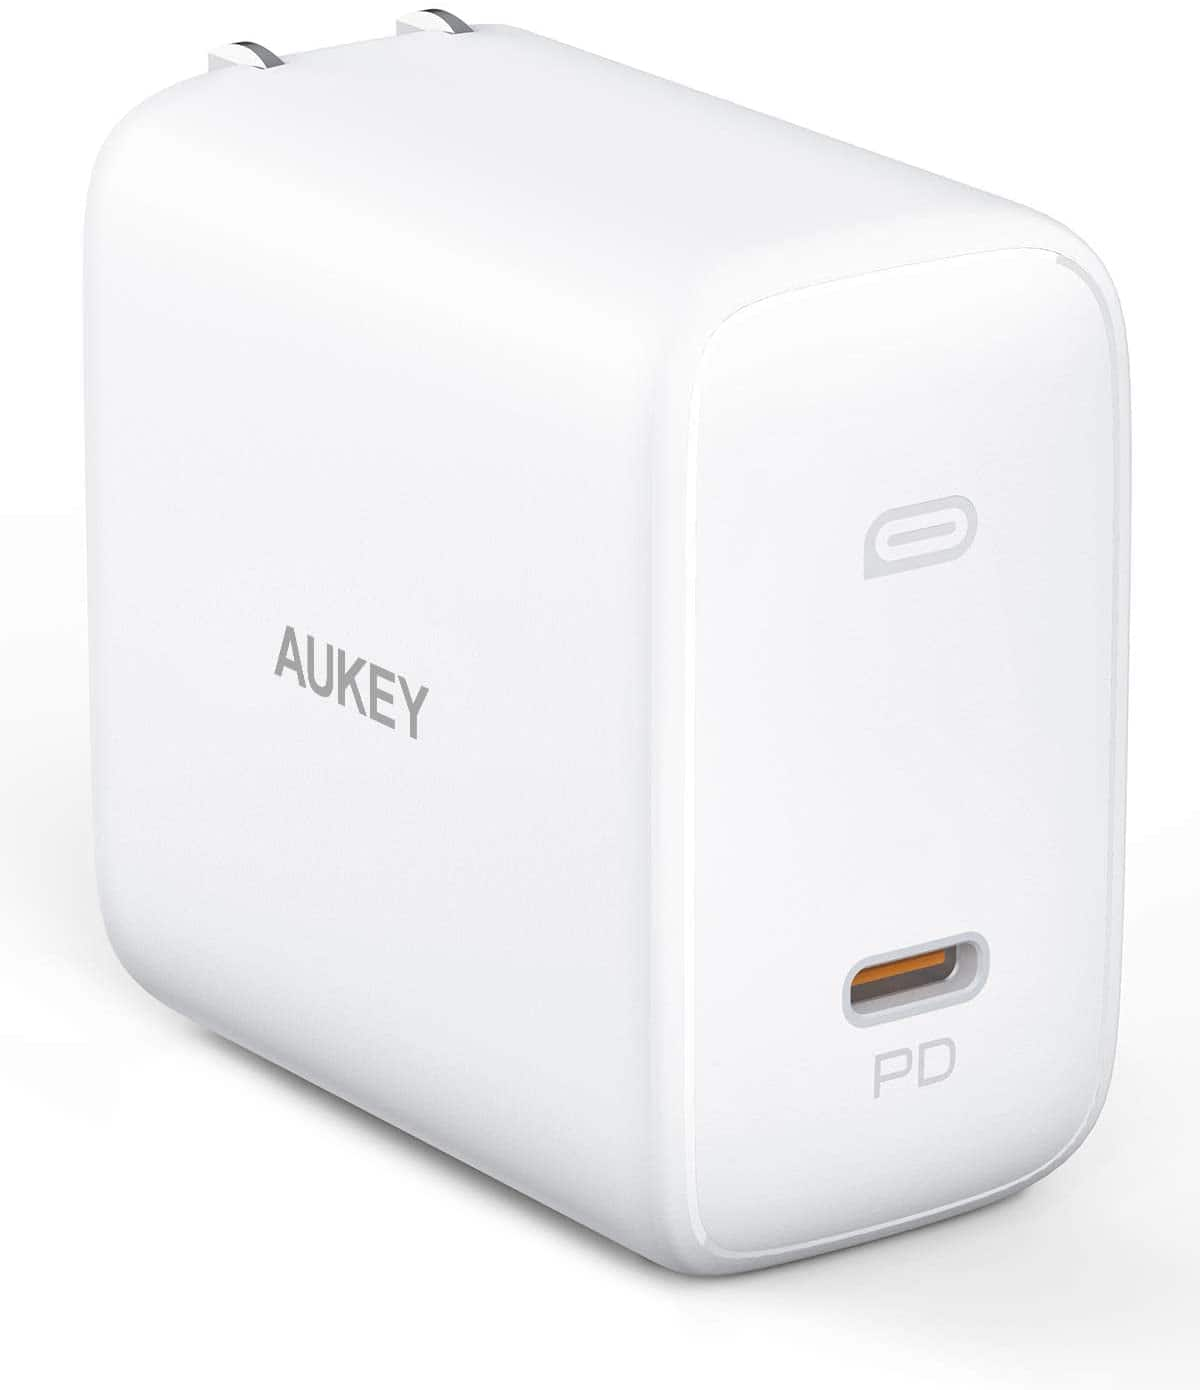 100W AUKEY Omnia USB C Charger $29.99 after coupon w/free standard shipping or Prime